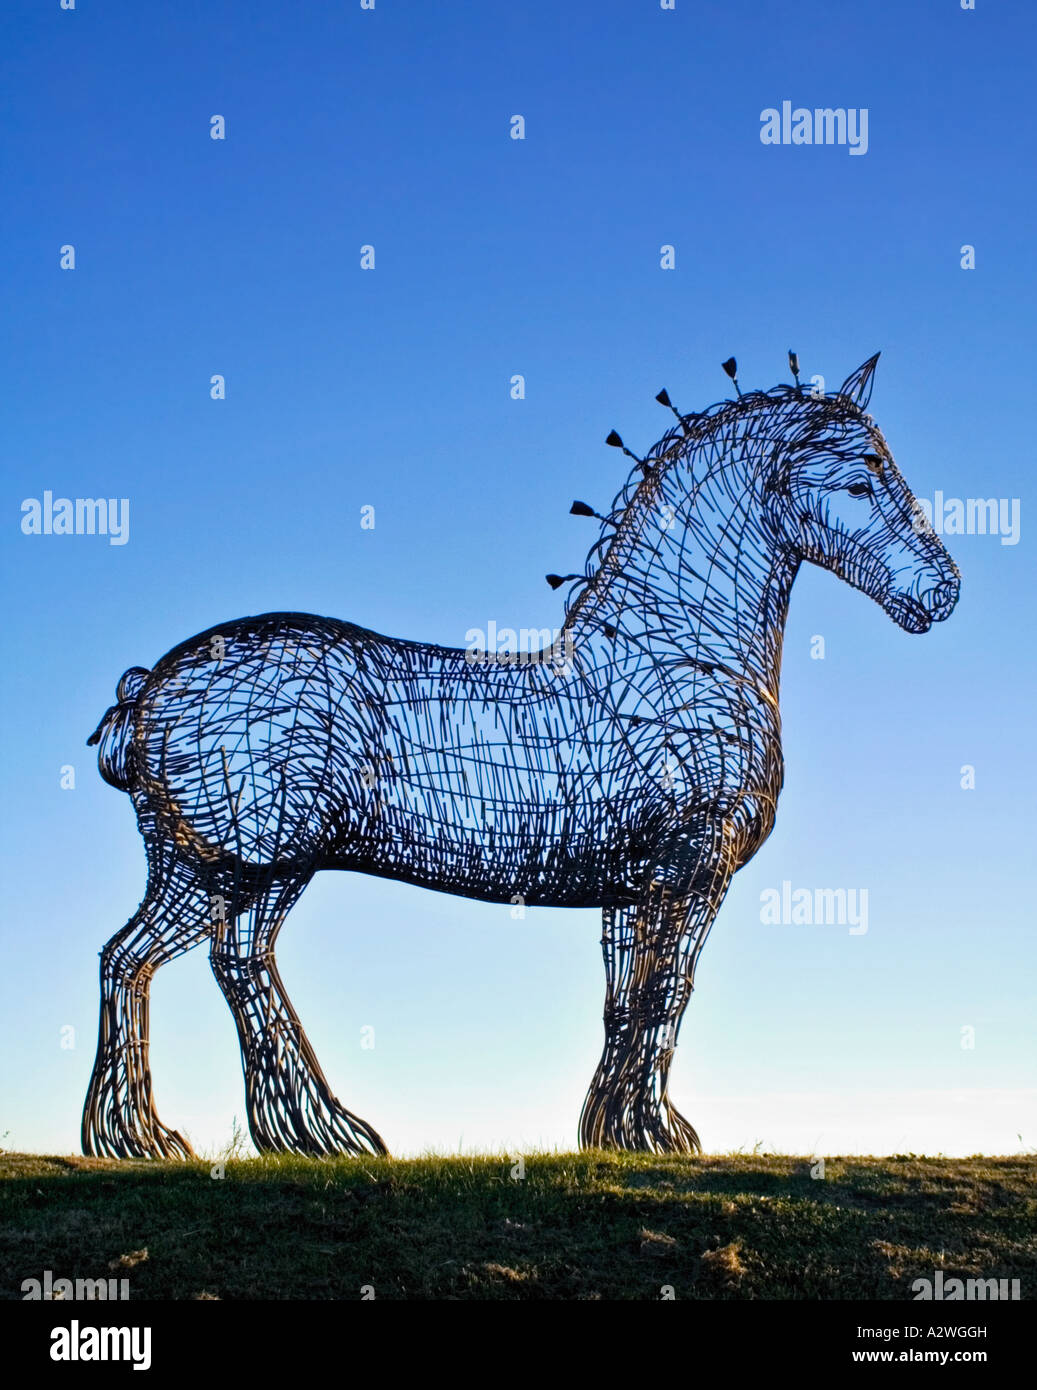 Andy Scott's magnificent Sculpture of a Clydesdale horse entitled Heavy Horse, Glasgow next to the M8 motorway, - Stock Image